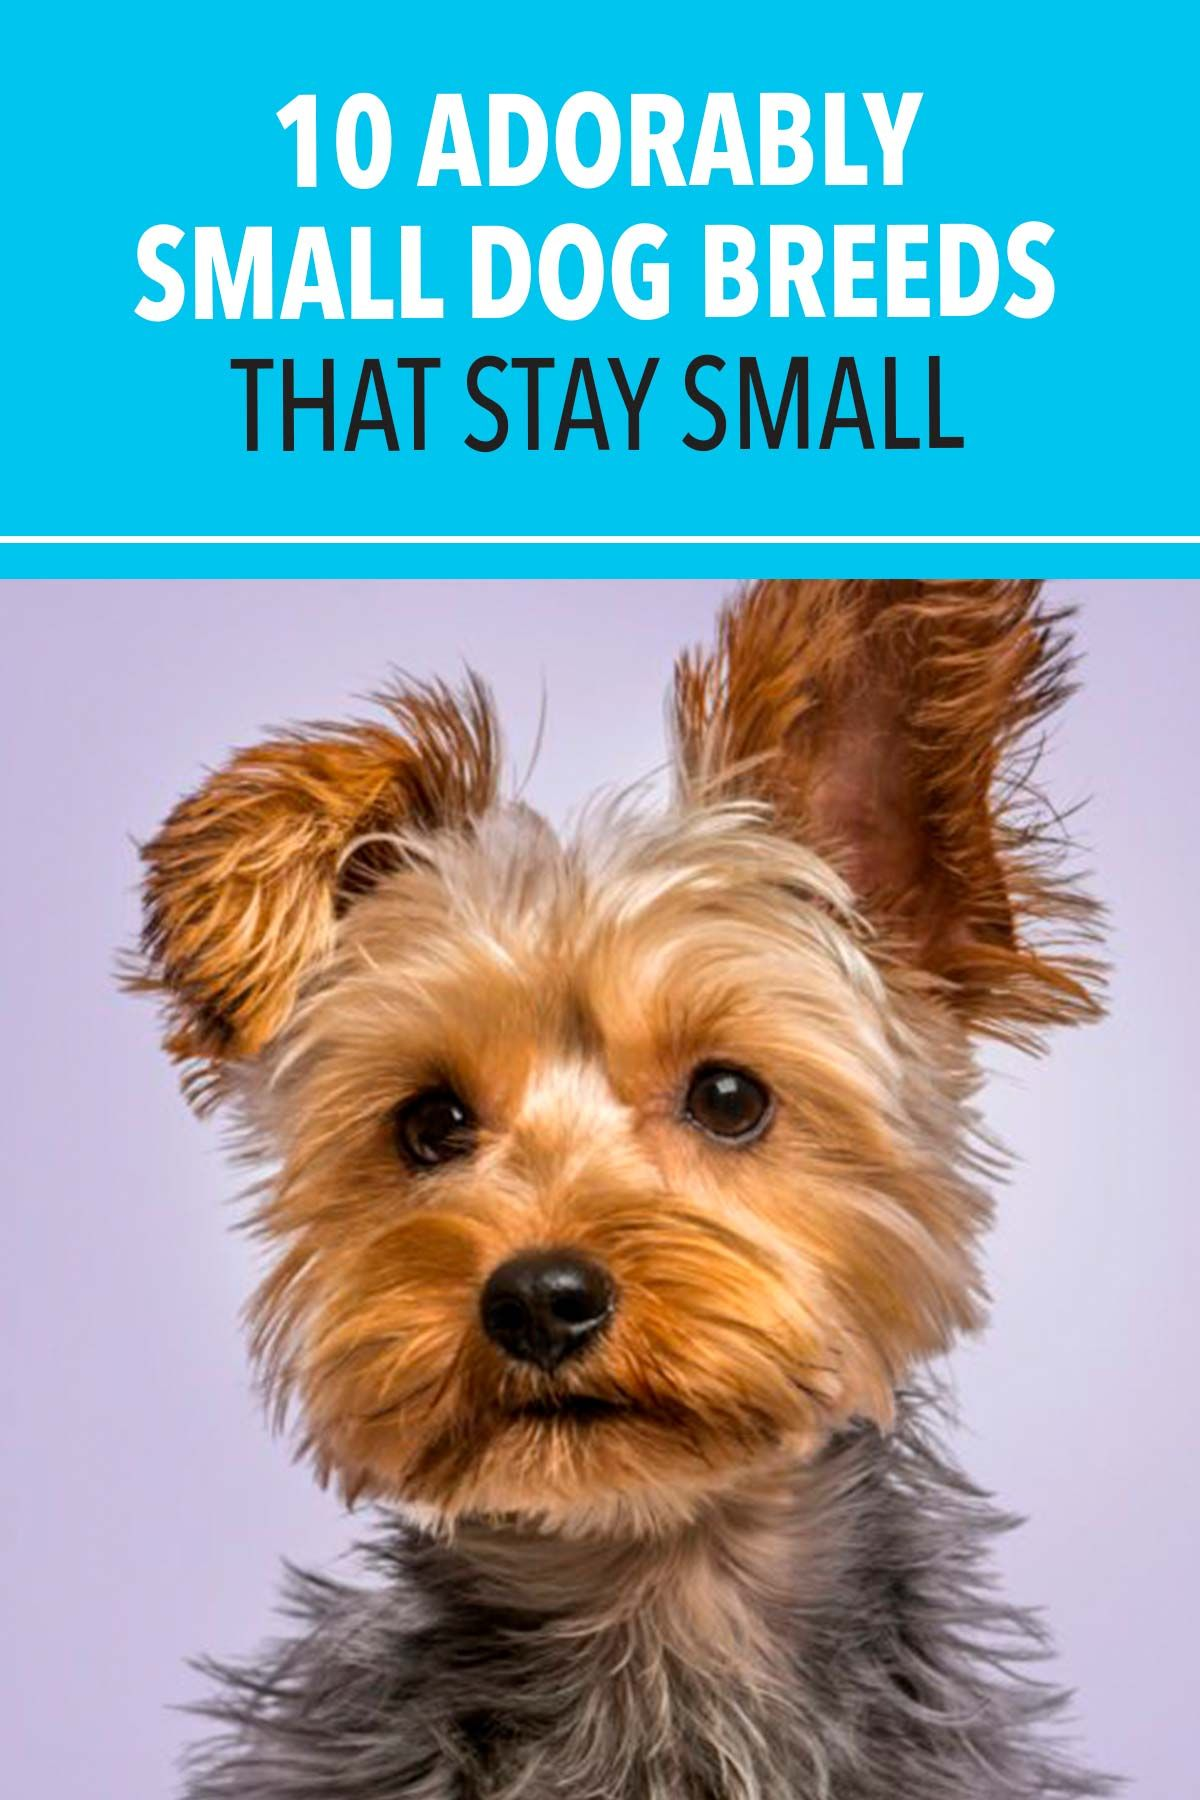 10 Adorably Small Dog Breeds That Stay Small In 2020 Small Dog Breeds Dog Breeds Small Dogs